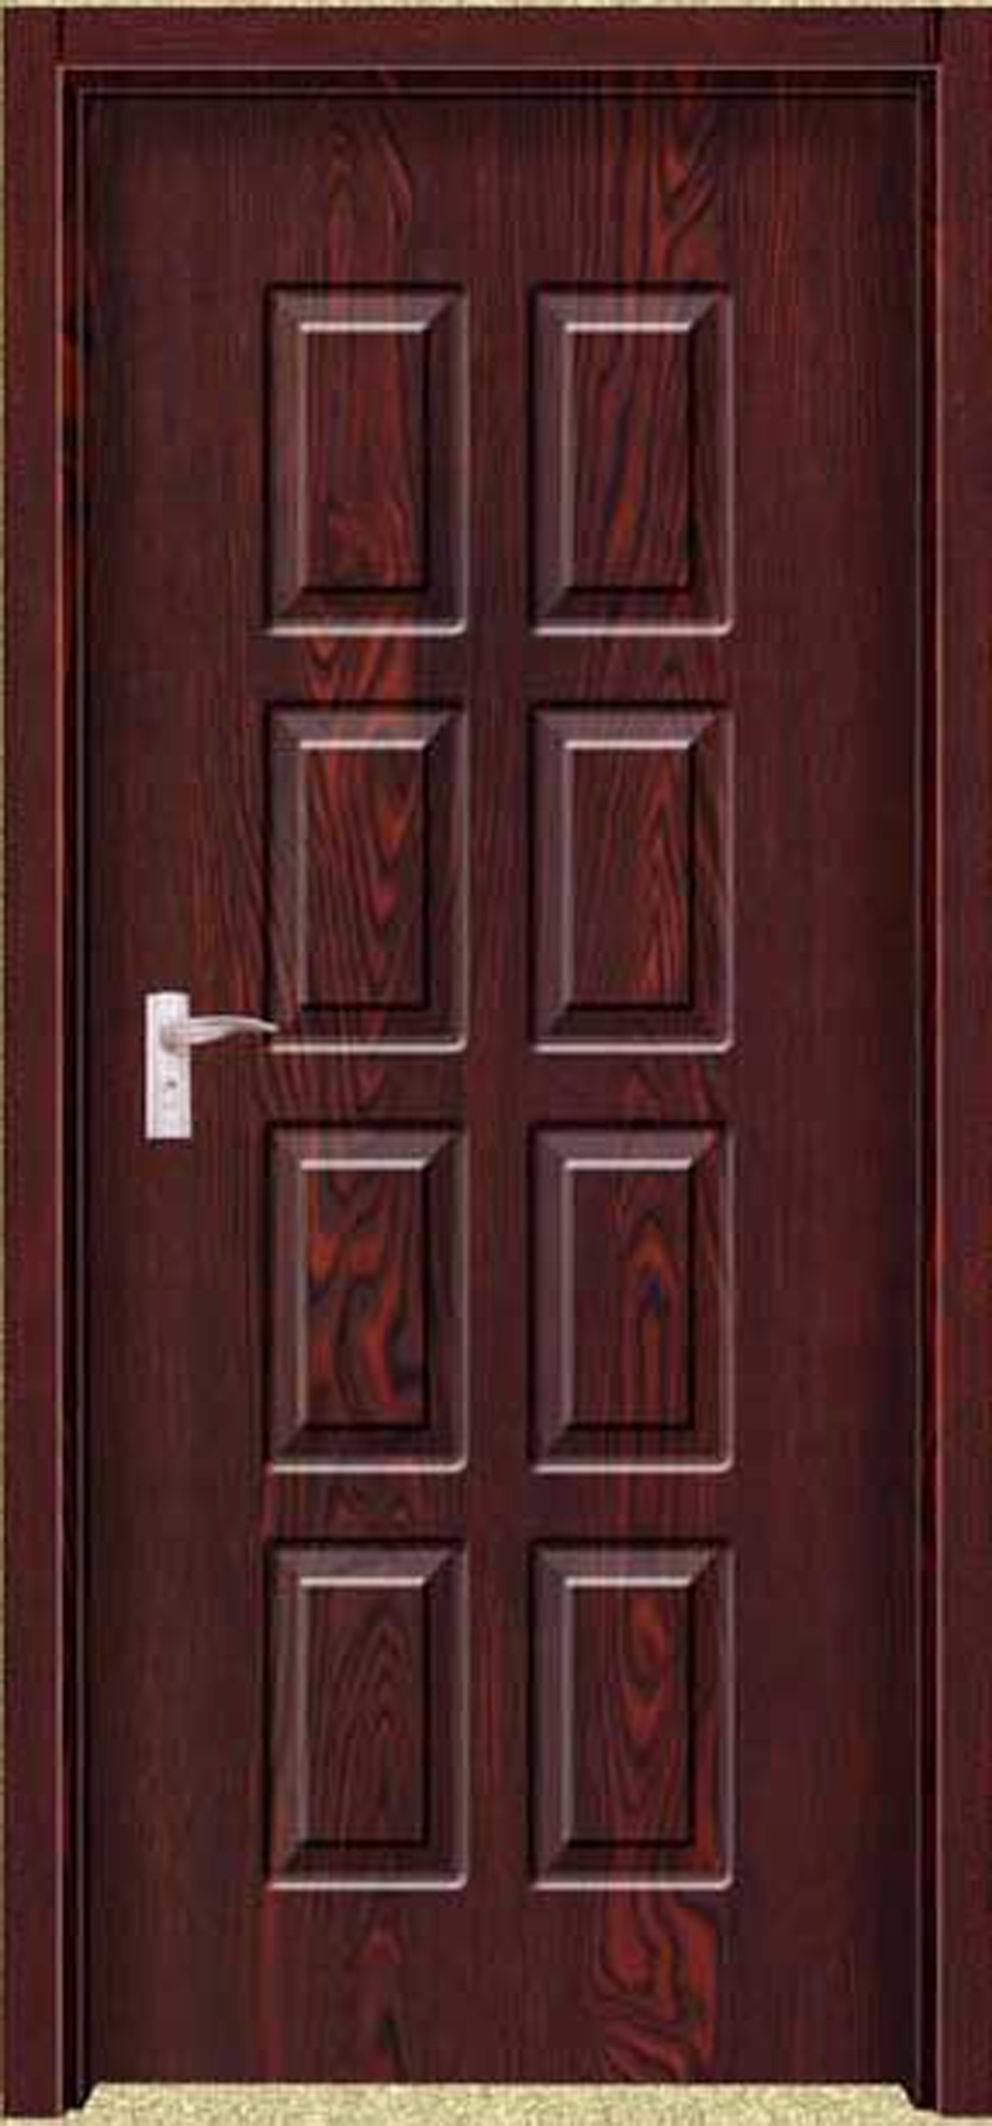 Wooden safety door designs photos for Wood carving doors hd images